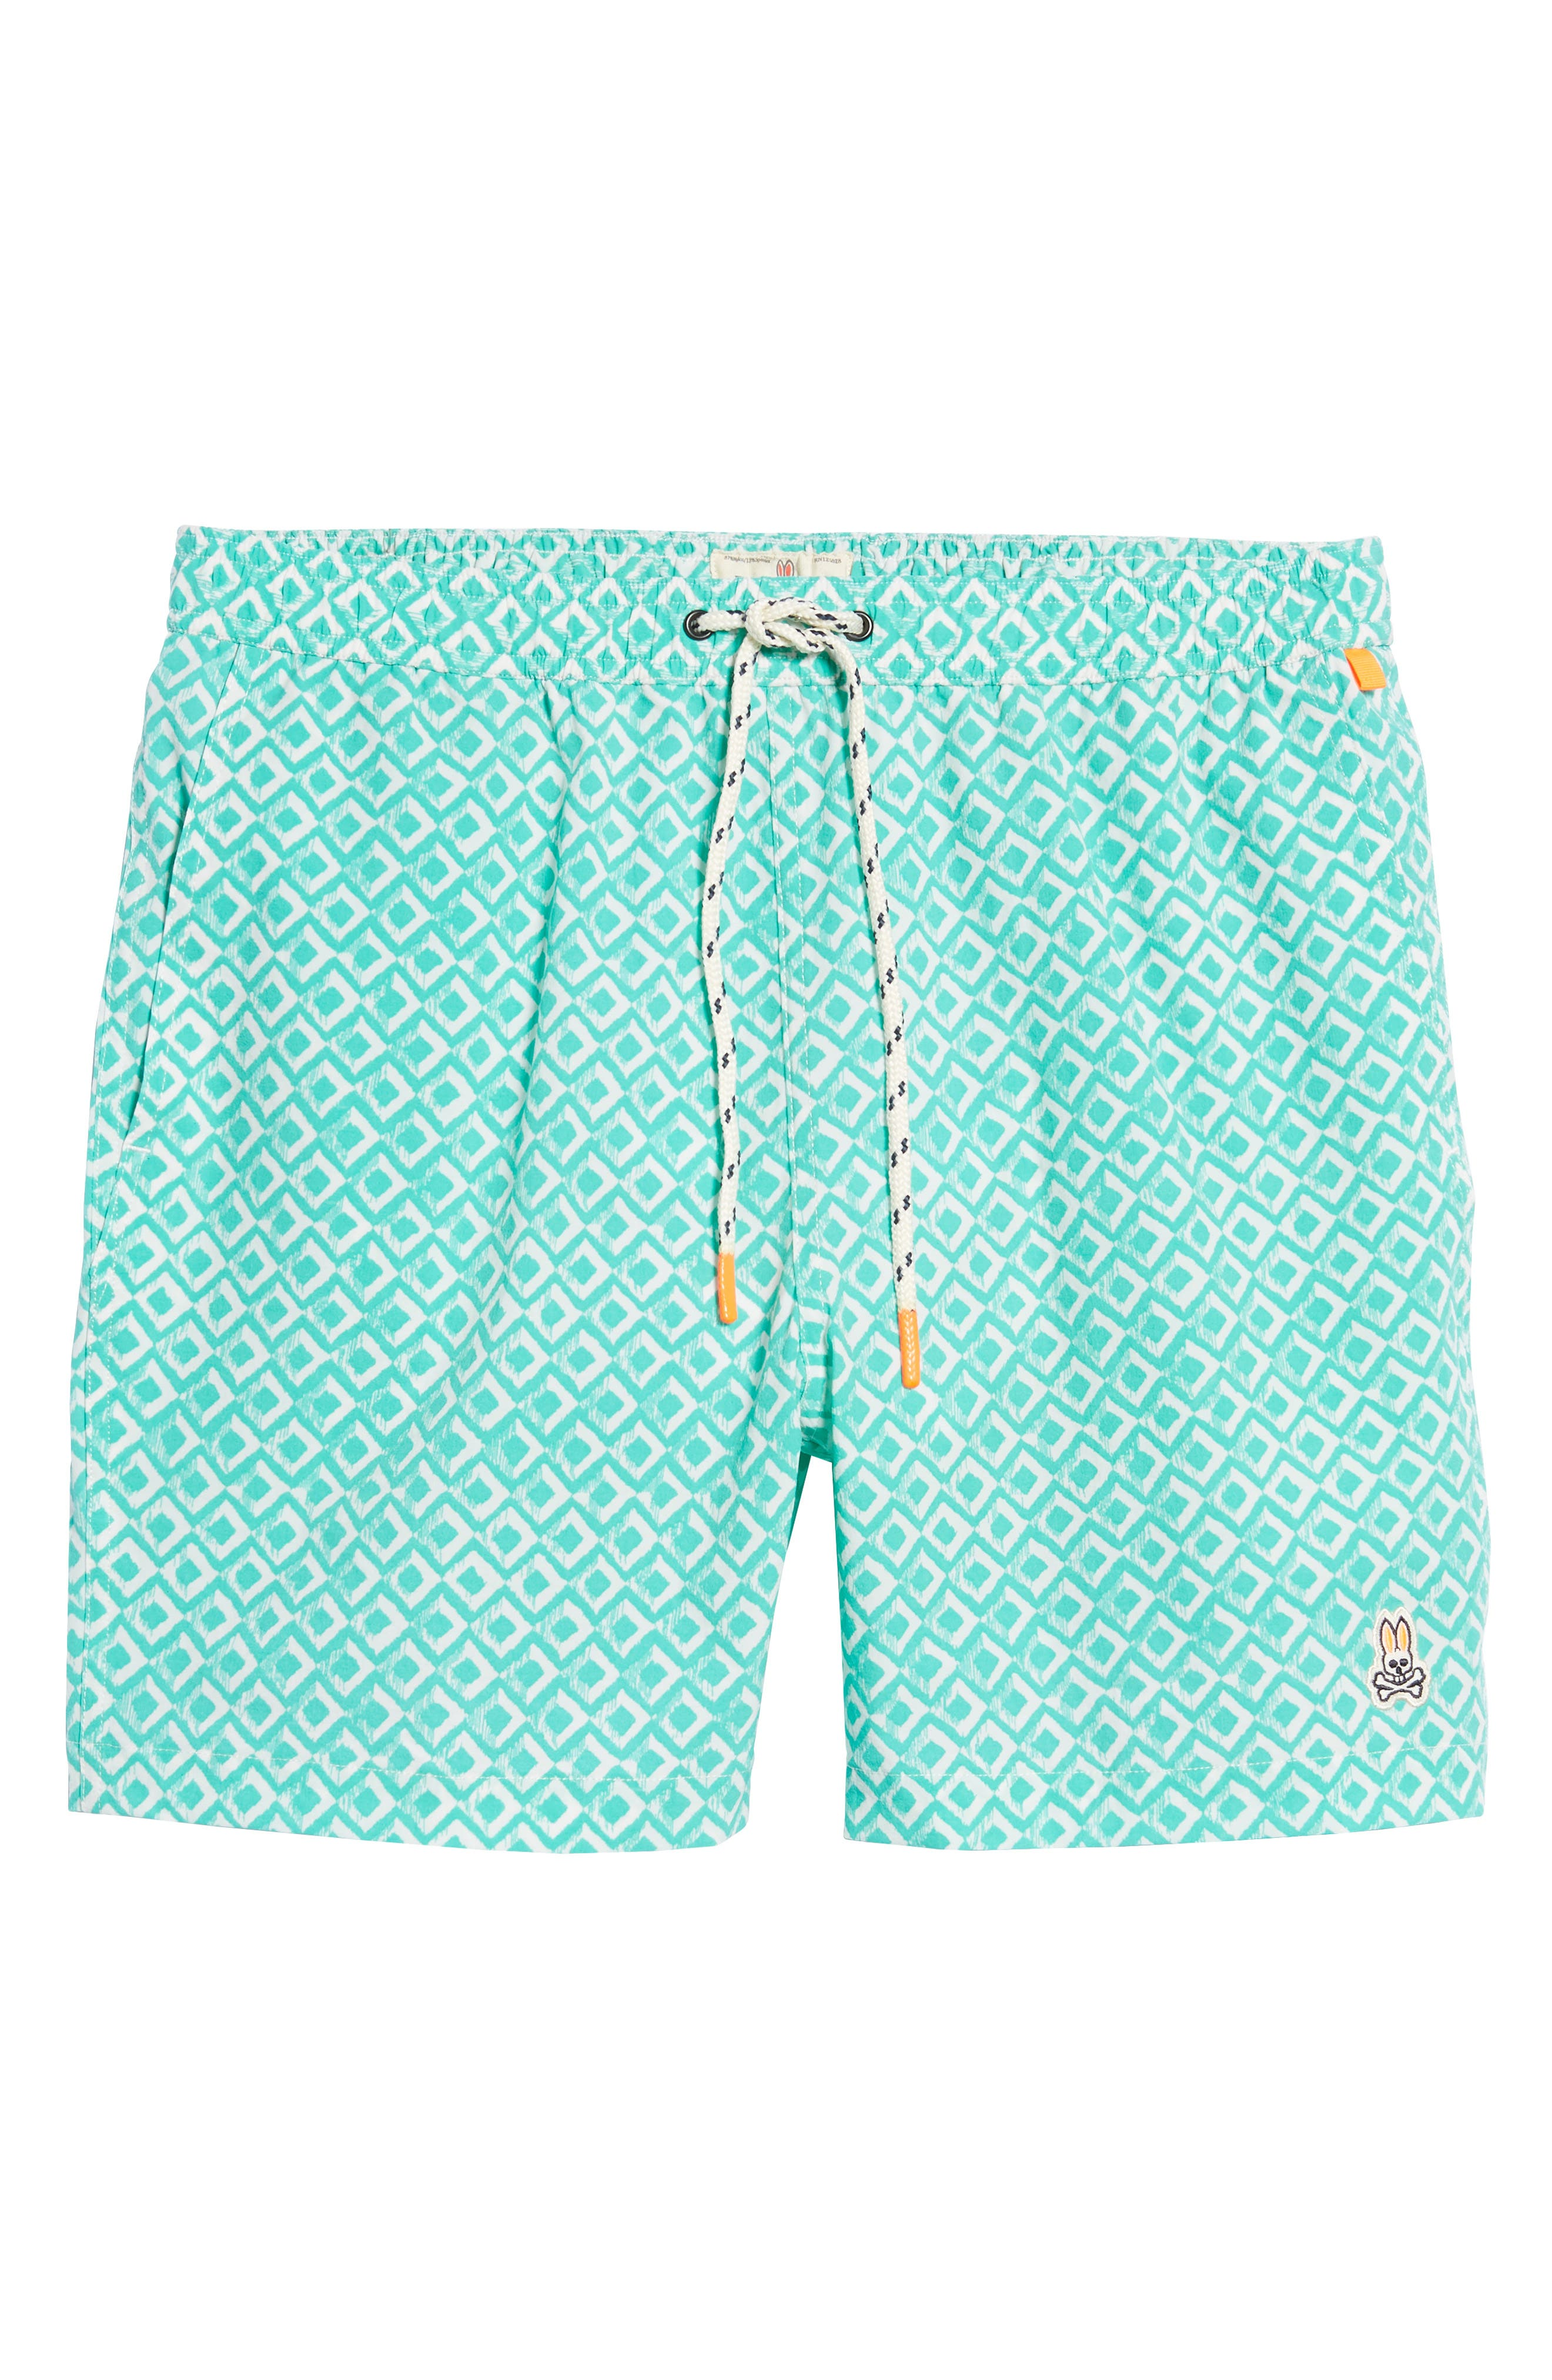 Drippy Diamond Swim Trunks,                             Alternate thumbnail 6, color,                             300